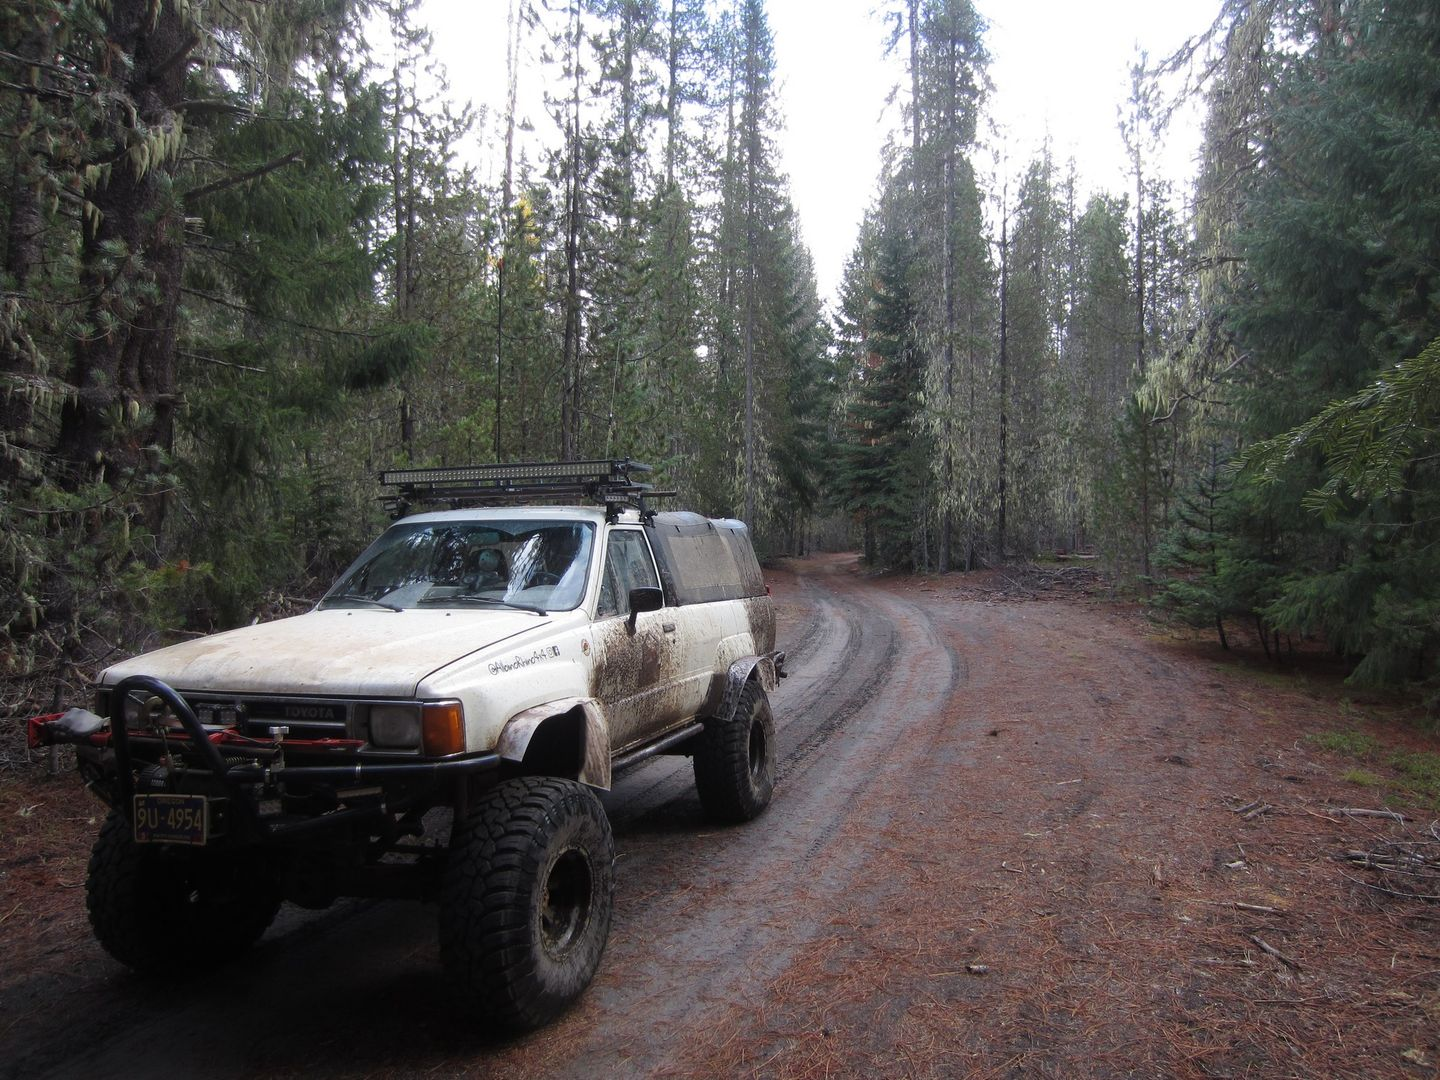 Barlow Trail - Waypoint 30: Continue Straight